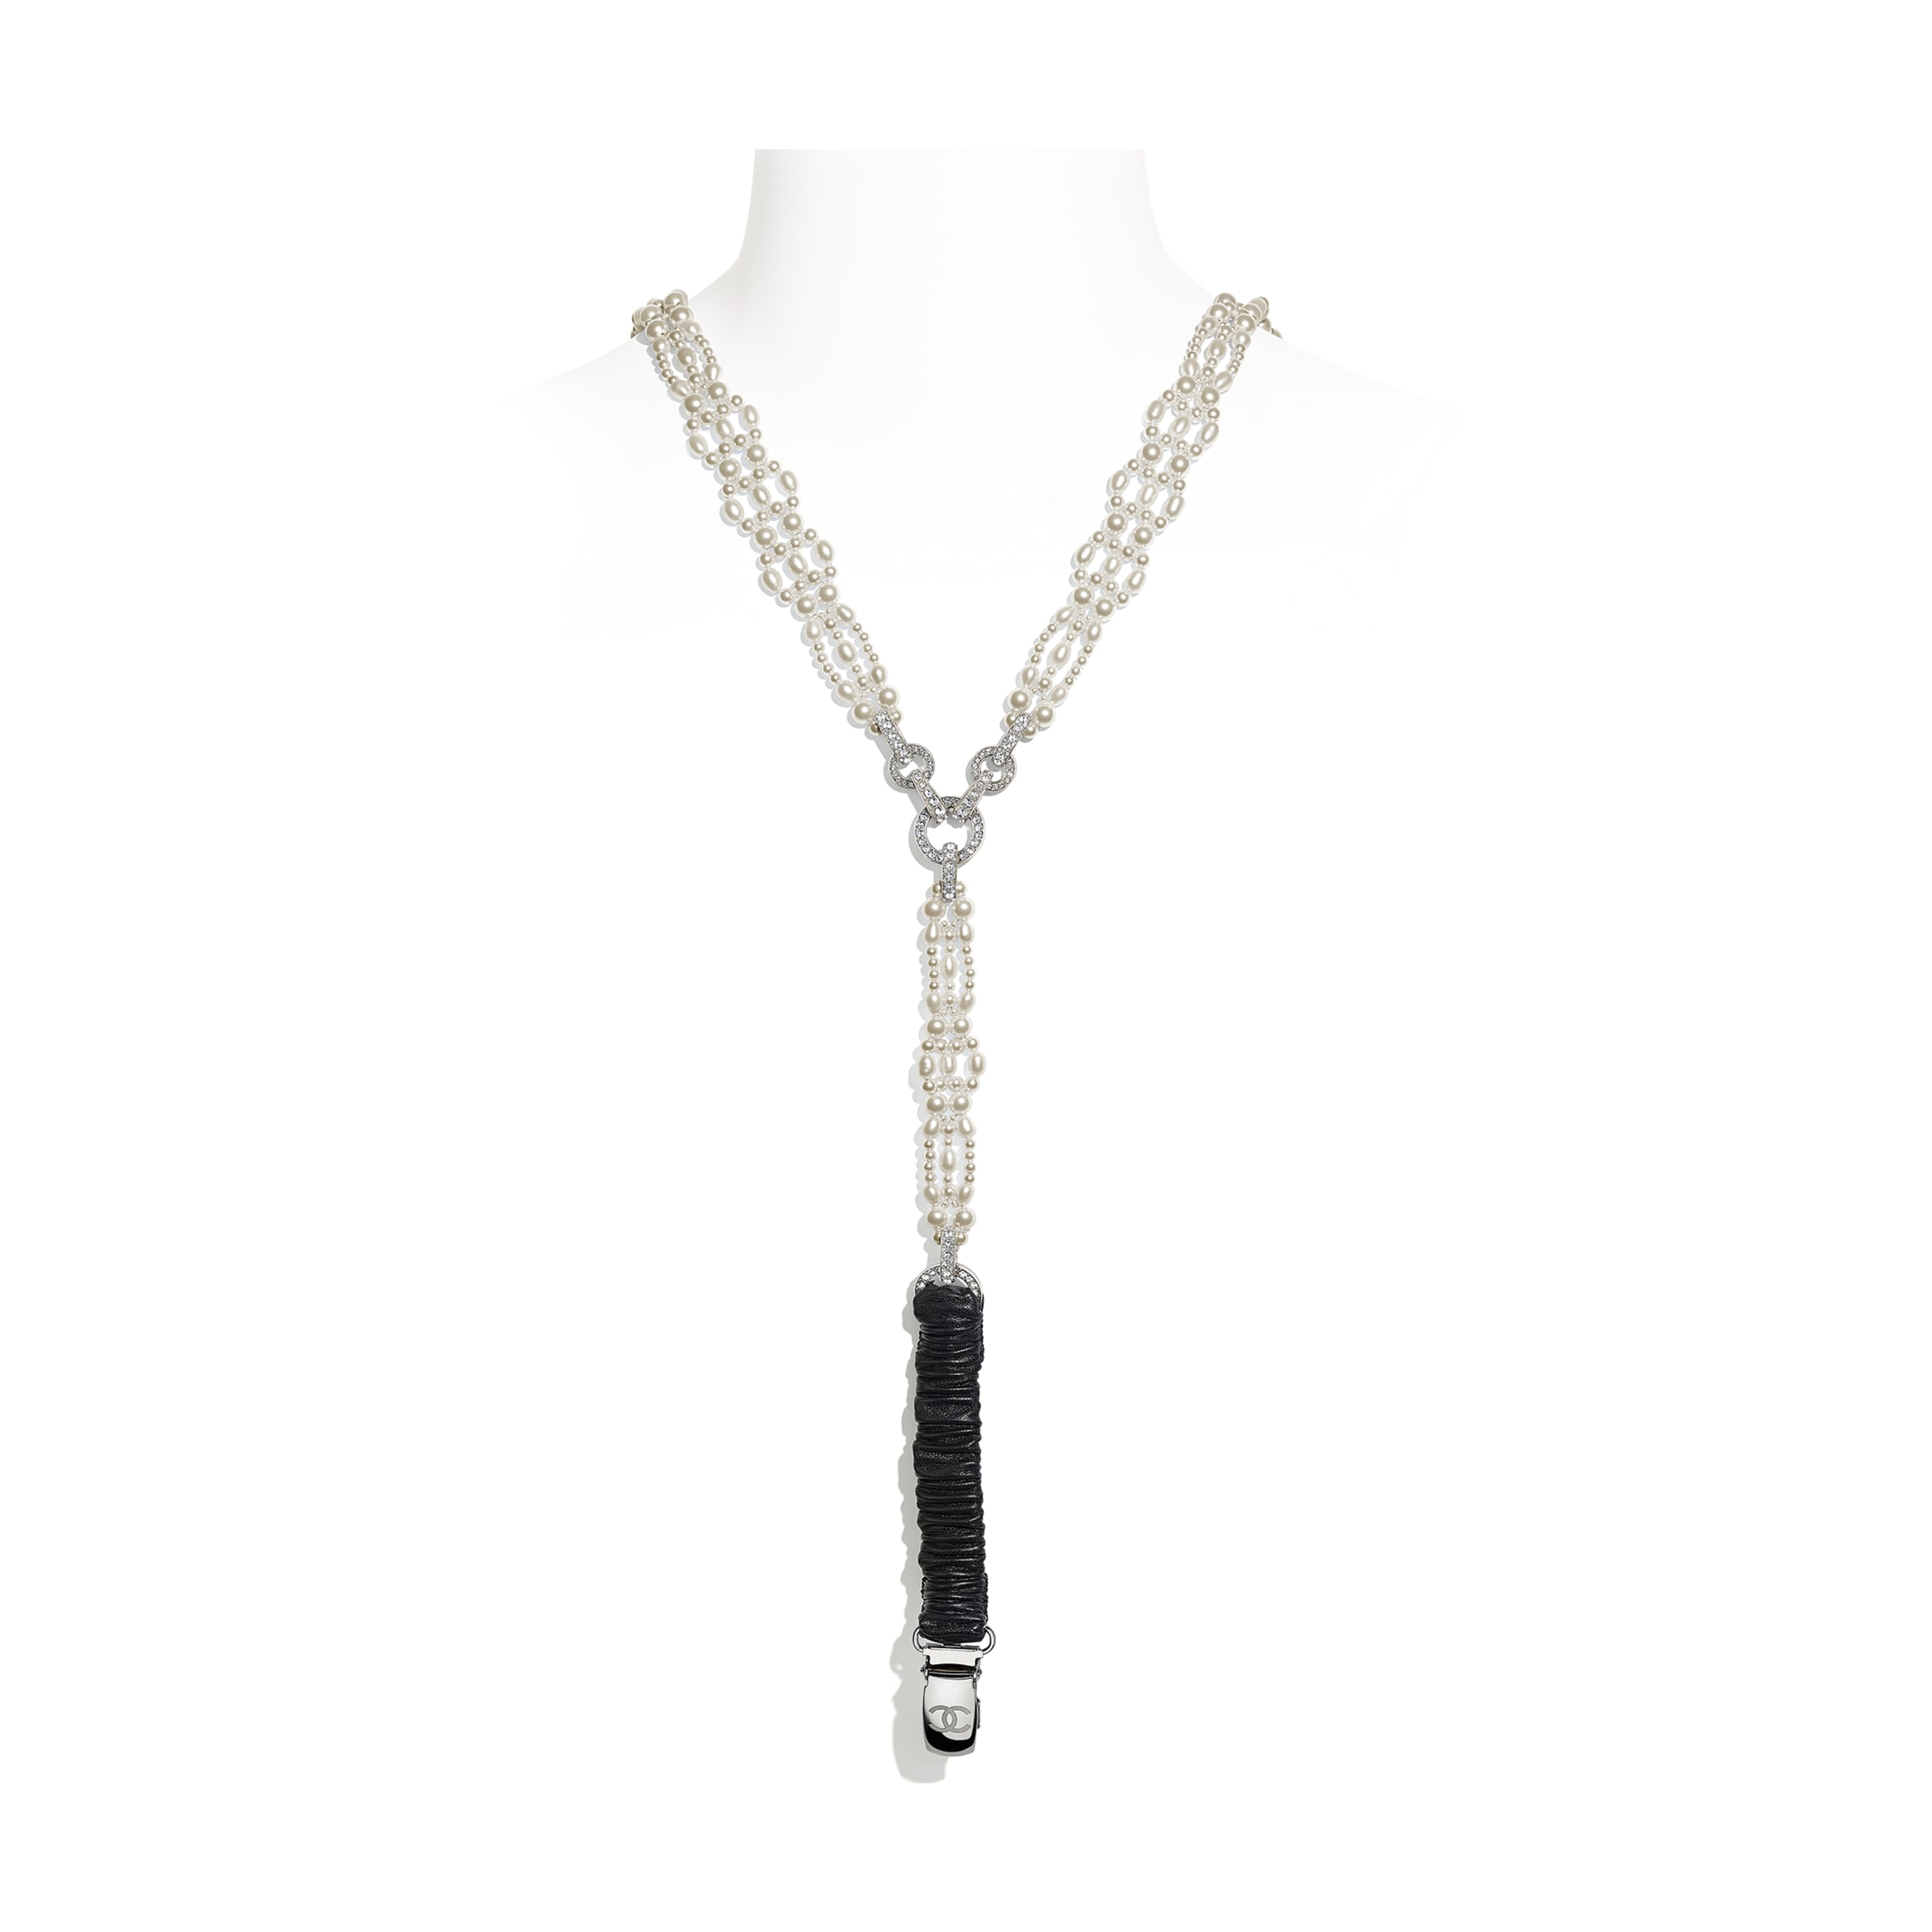 Suspenders - Silver, Pearly White, Black & Crystal - Metal, Cultured Freshwater Pearls, Glass Pearls, Lambskin & Strass - CHANEL - Other view - see standard sized version